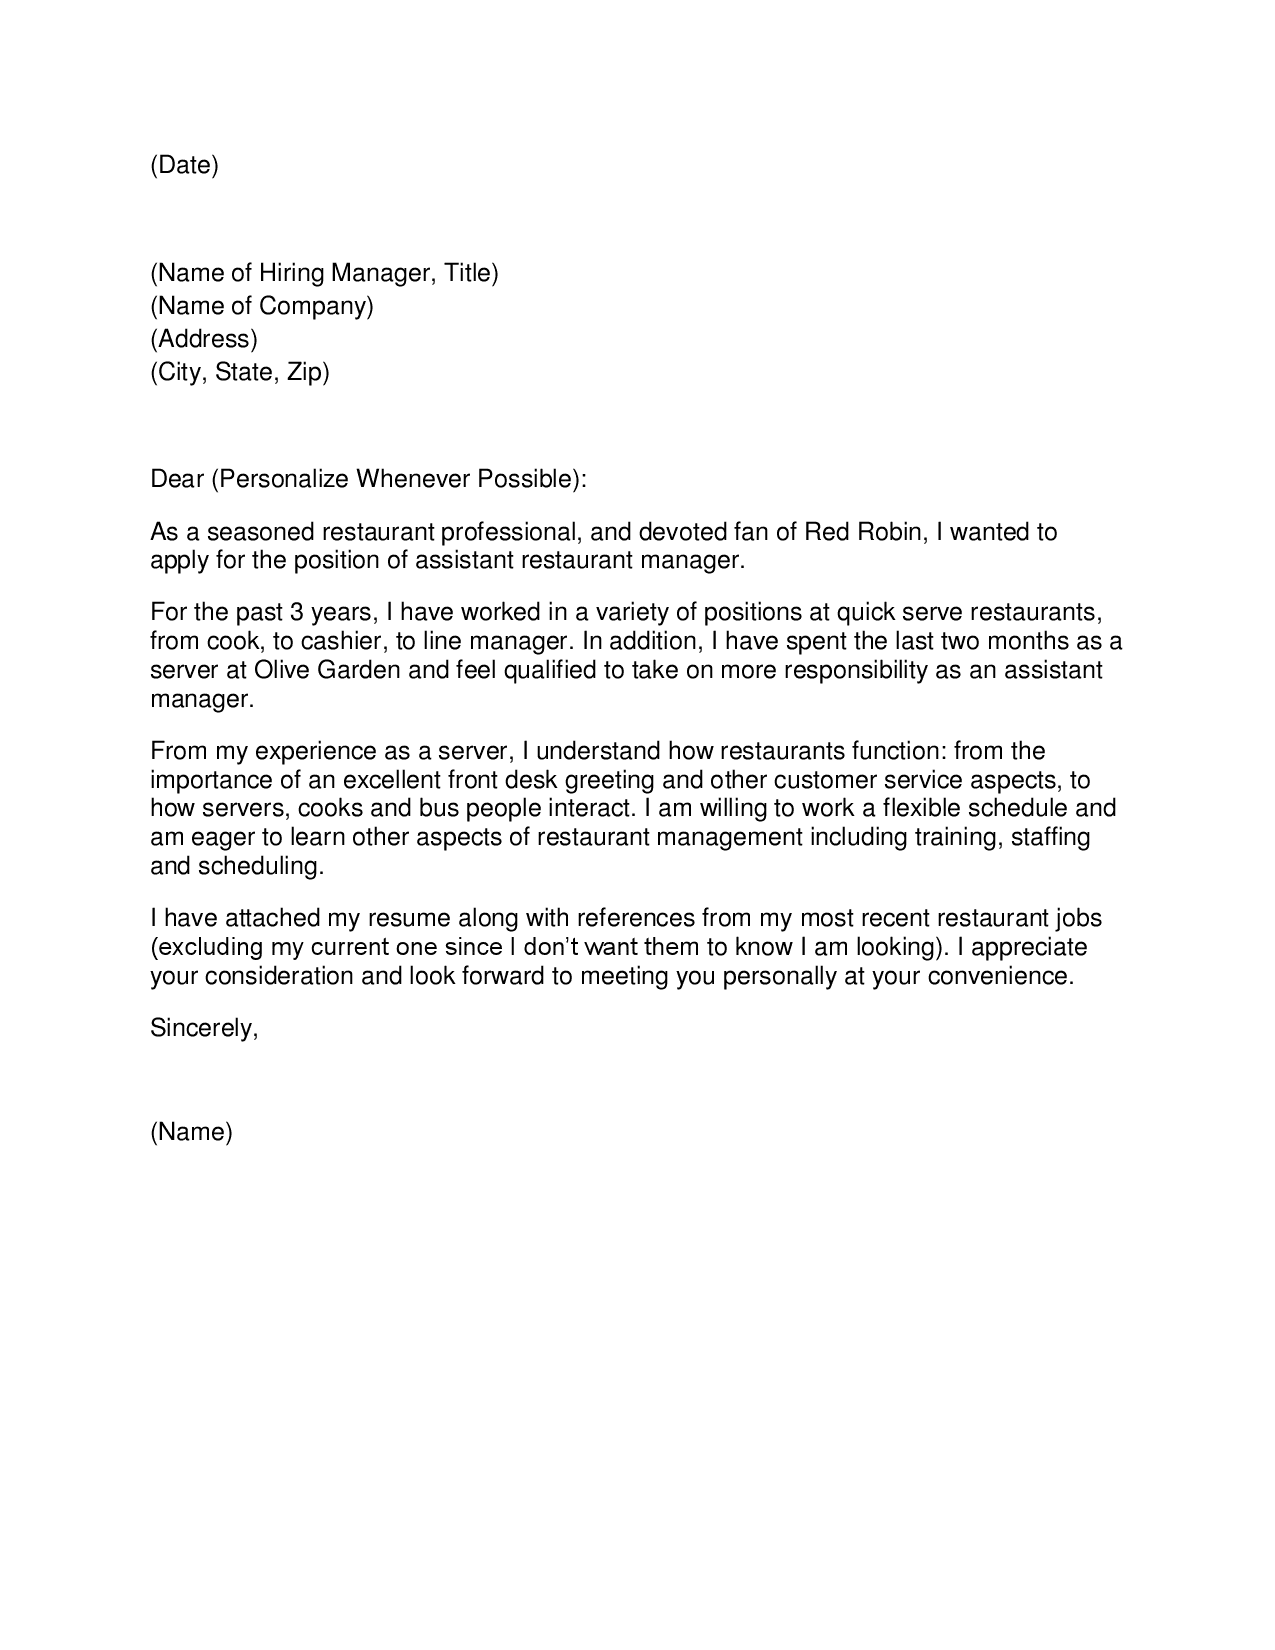 Sample Quality Control Cover Letter Touchapps Co